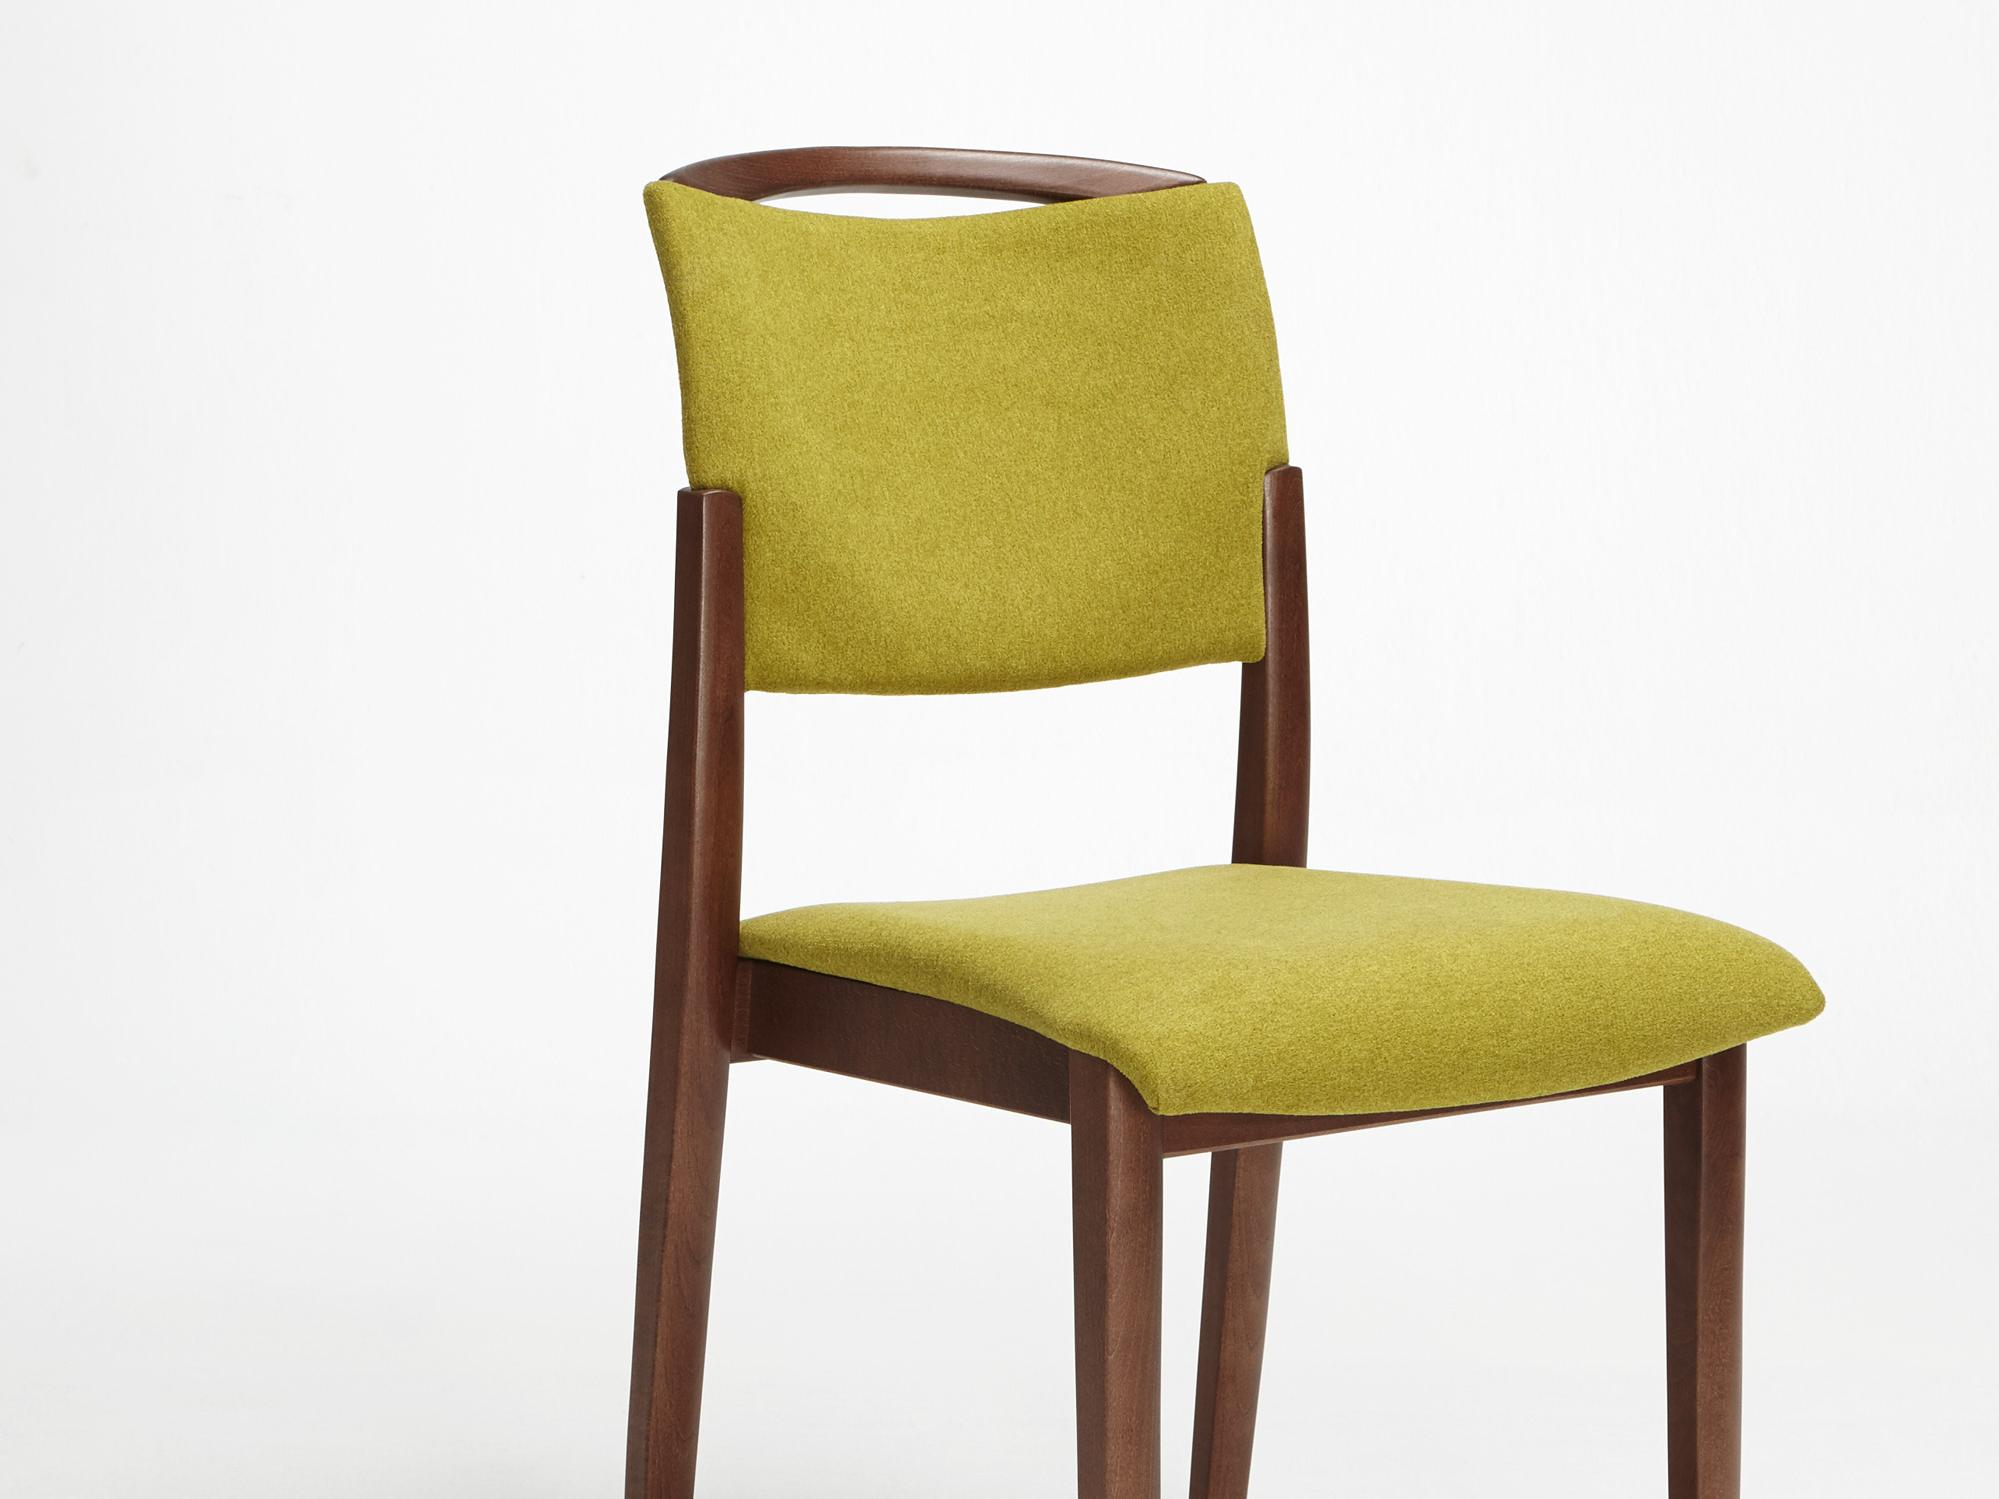 The Fena model as a stacking chair with handle and no armrests